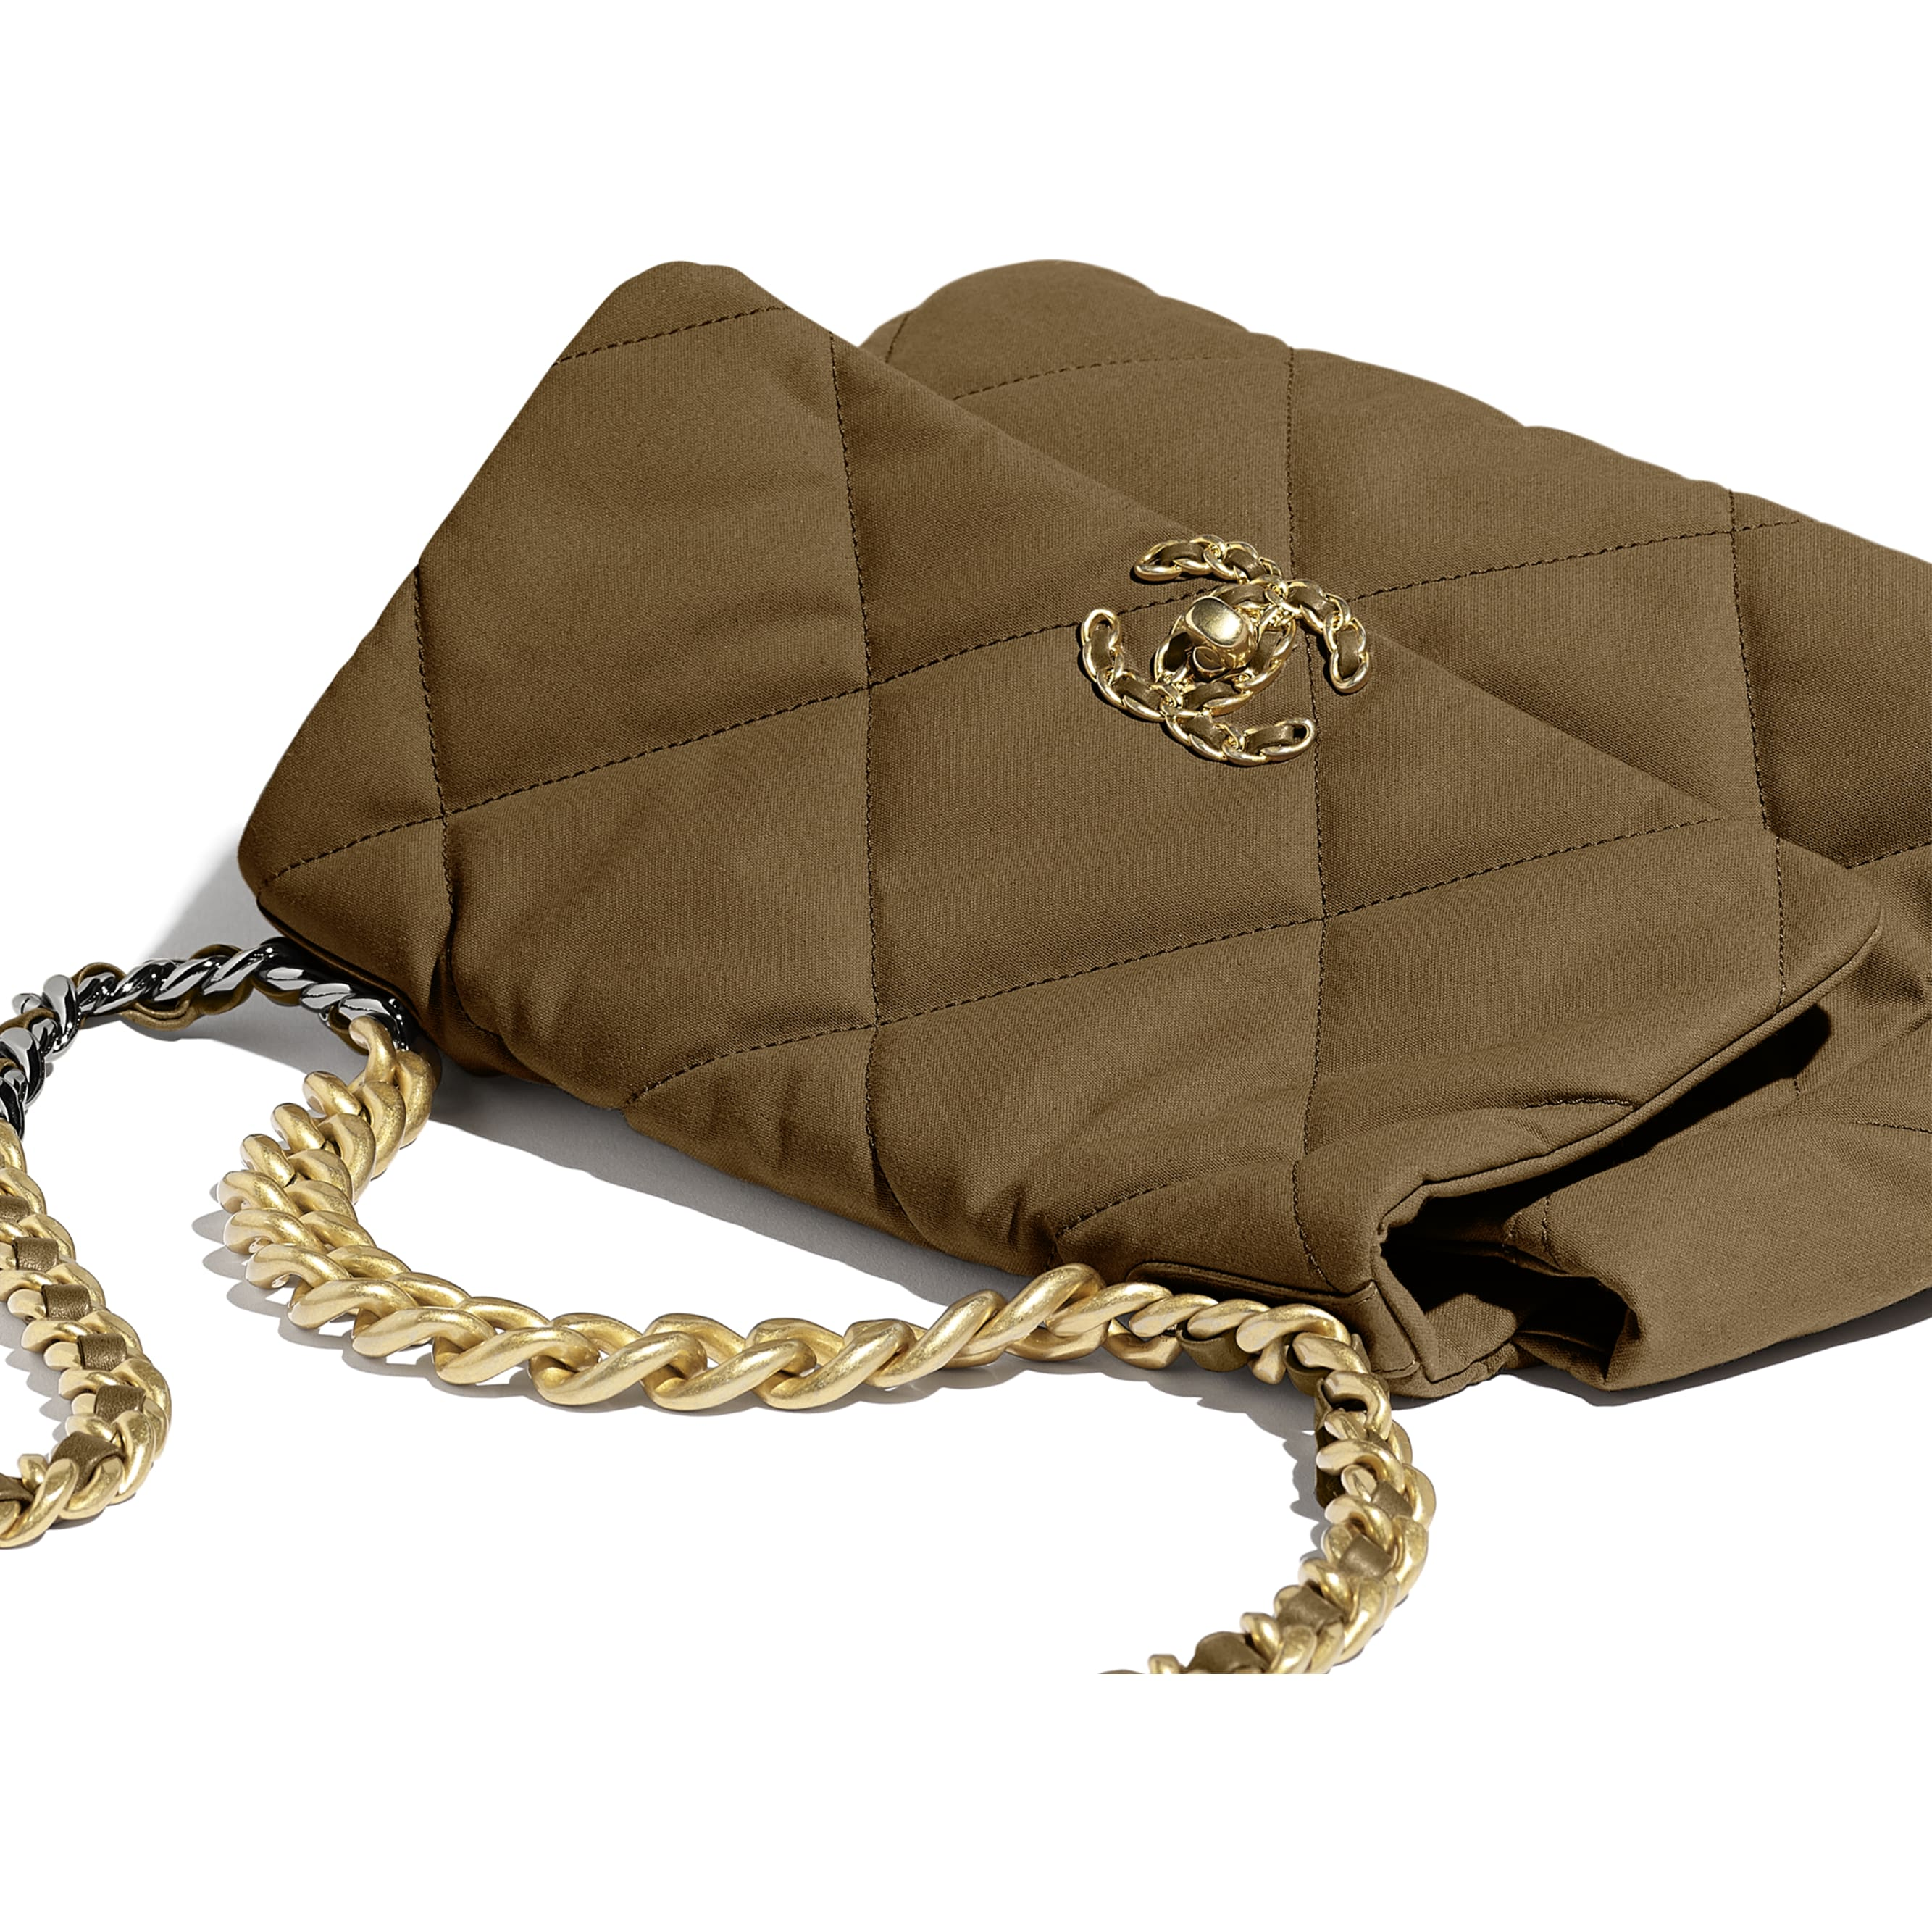 CHANEL 19 Large Flap Bag - Bronze - Cotton Canvas, Calfskin, Gold-Tone, Silver-Tone & Ruthenium-Finish Metal - Extra view - see standard sized version